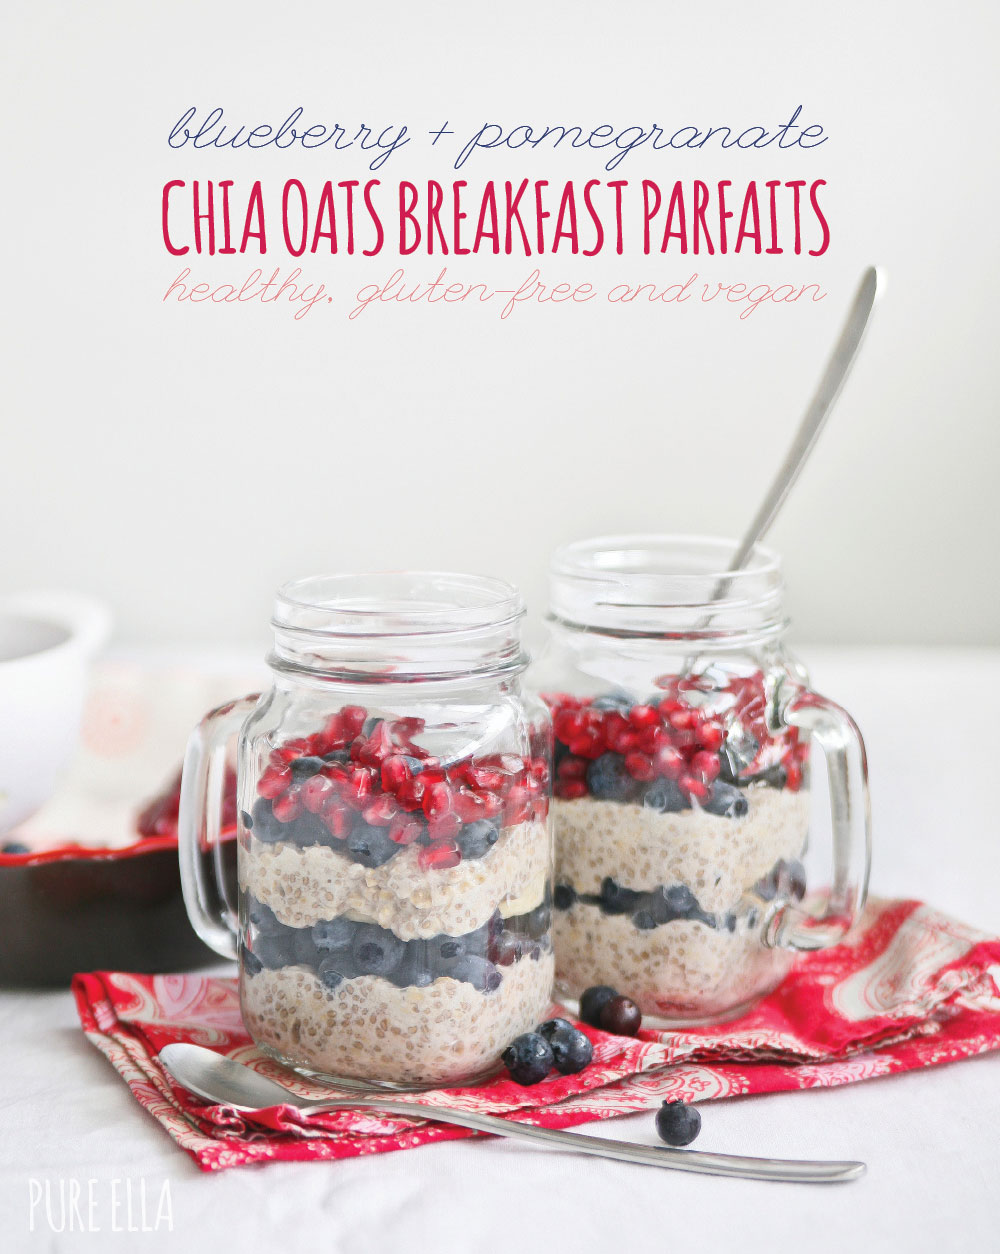 Pure-Ella-Blueberry-Pomegranate-Chia-Oats-Breakfast-Parfait